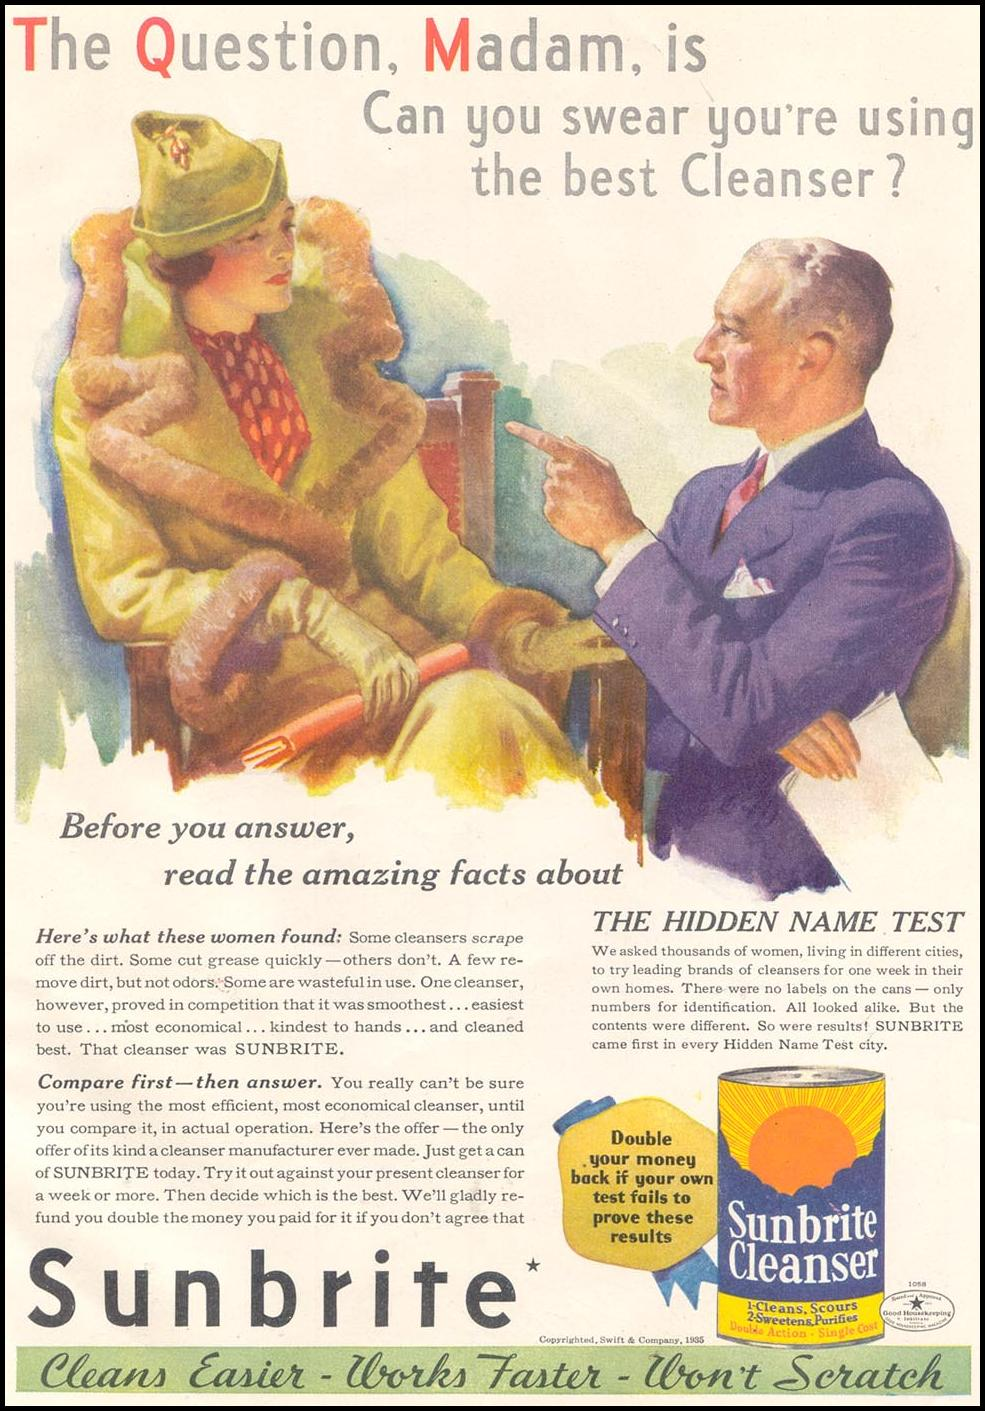 SUNBRITE CLEANSER GOOD HOUSEKEEPING 03/01/1935